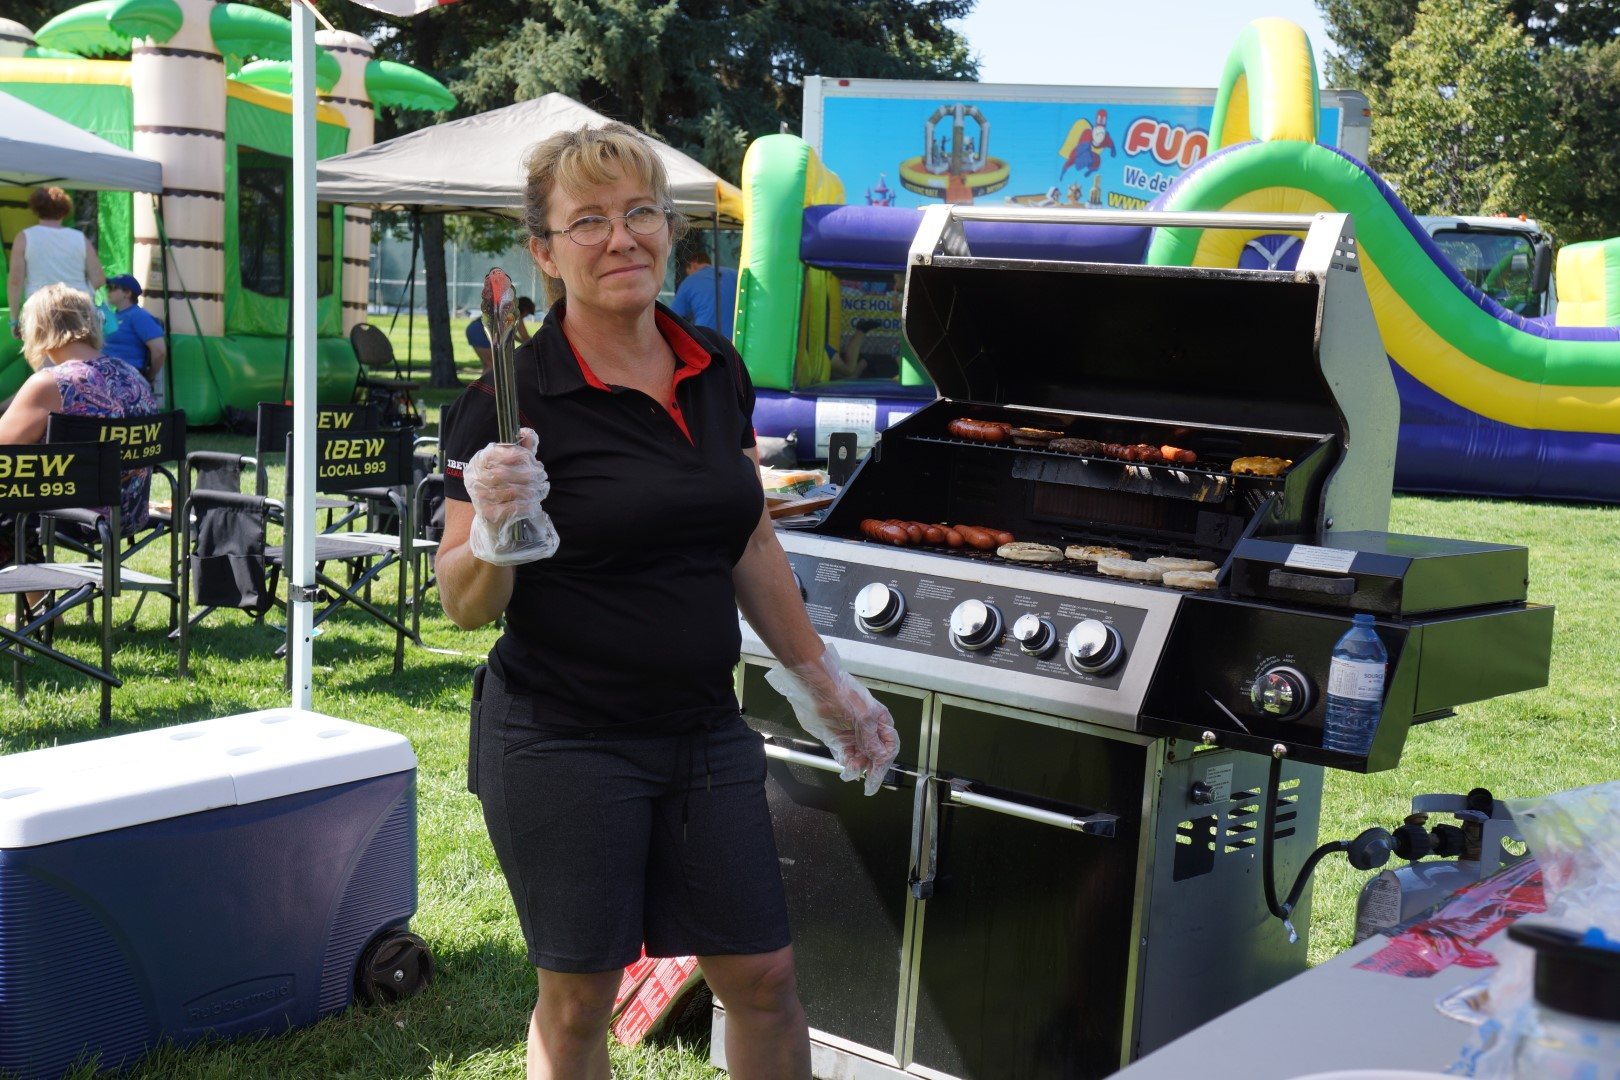 Kdlc Labour Day Picnic In Kamloops Ibew Local 993